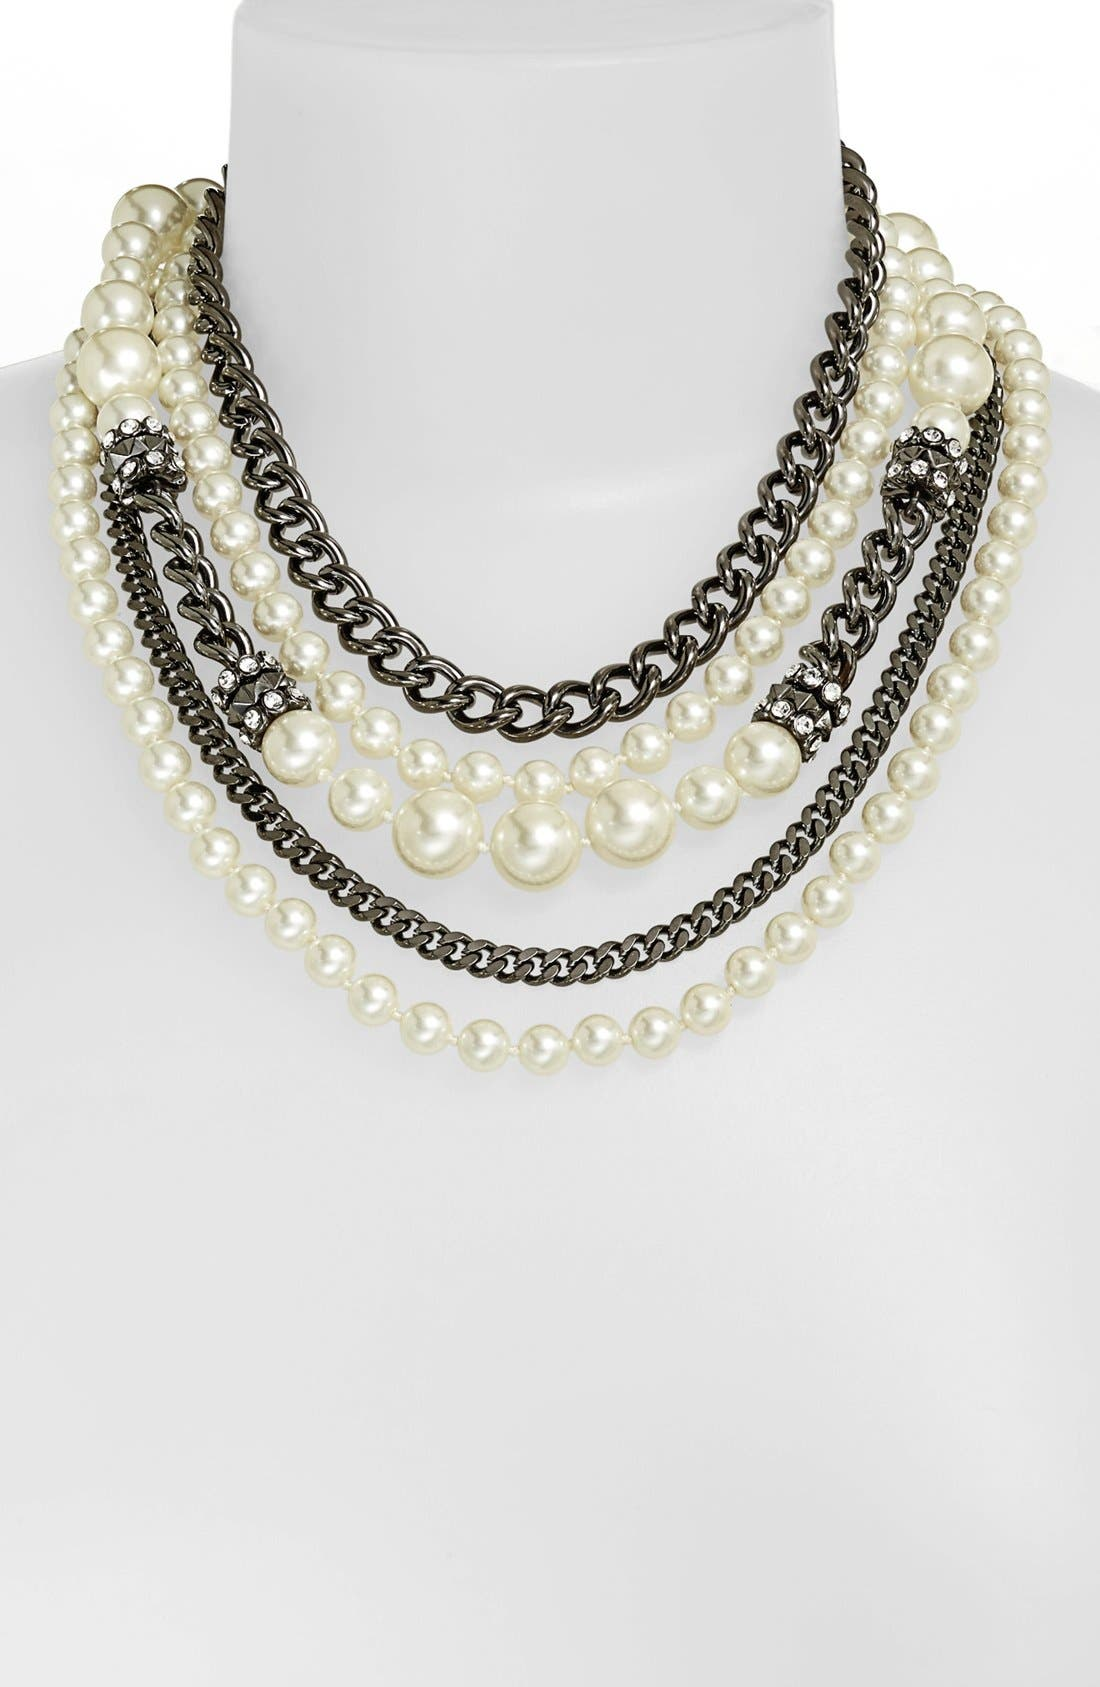 Alternate Image 1 Selected - Givenchy Multistrand Necklace (Nordstrom Exclusive)